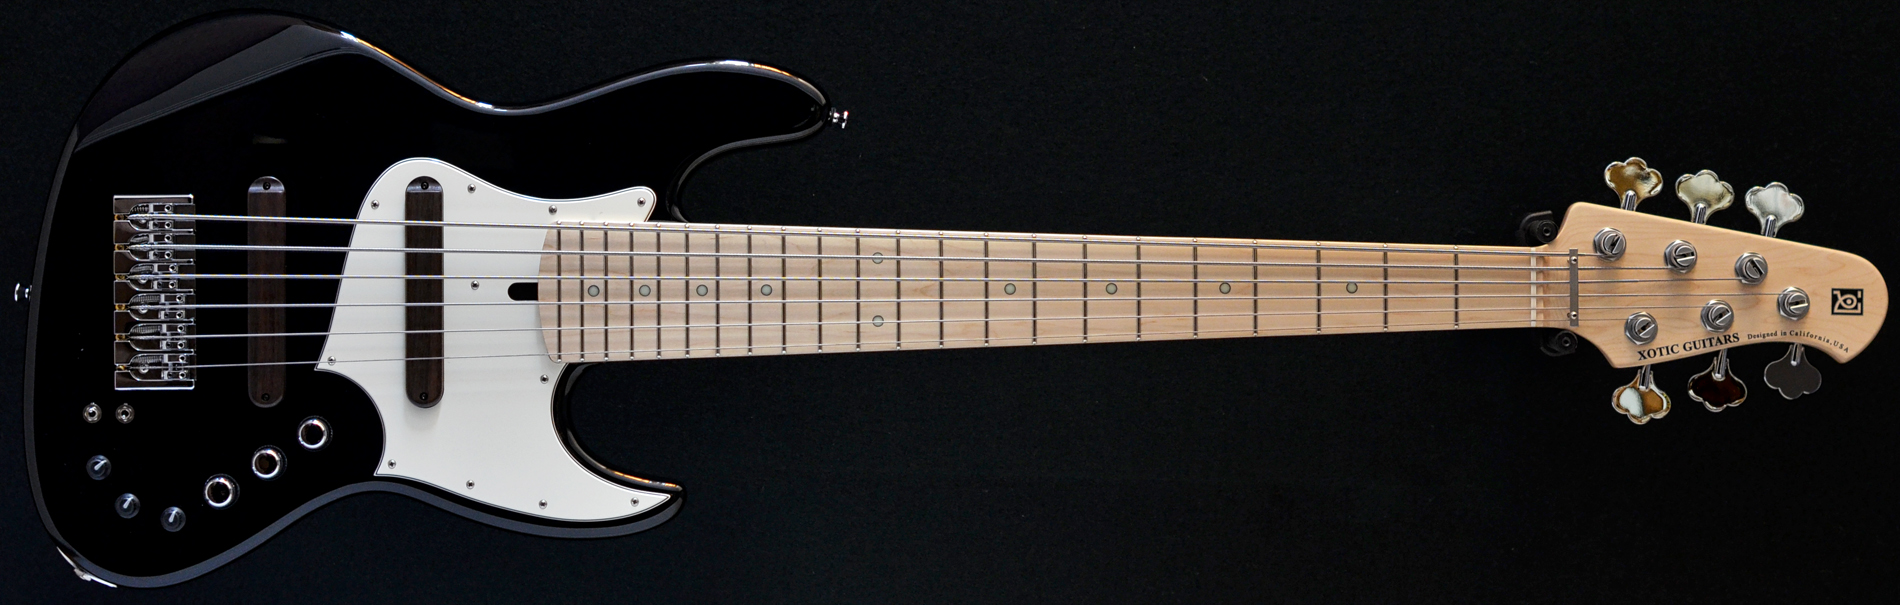 bass direct xotic xj 1t 6 six string bass ash natural fretted bolt on active passive. Black Bedroom Furniture Sets. Home Design Ideas